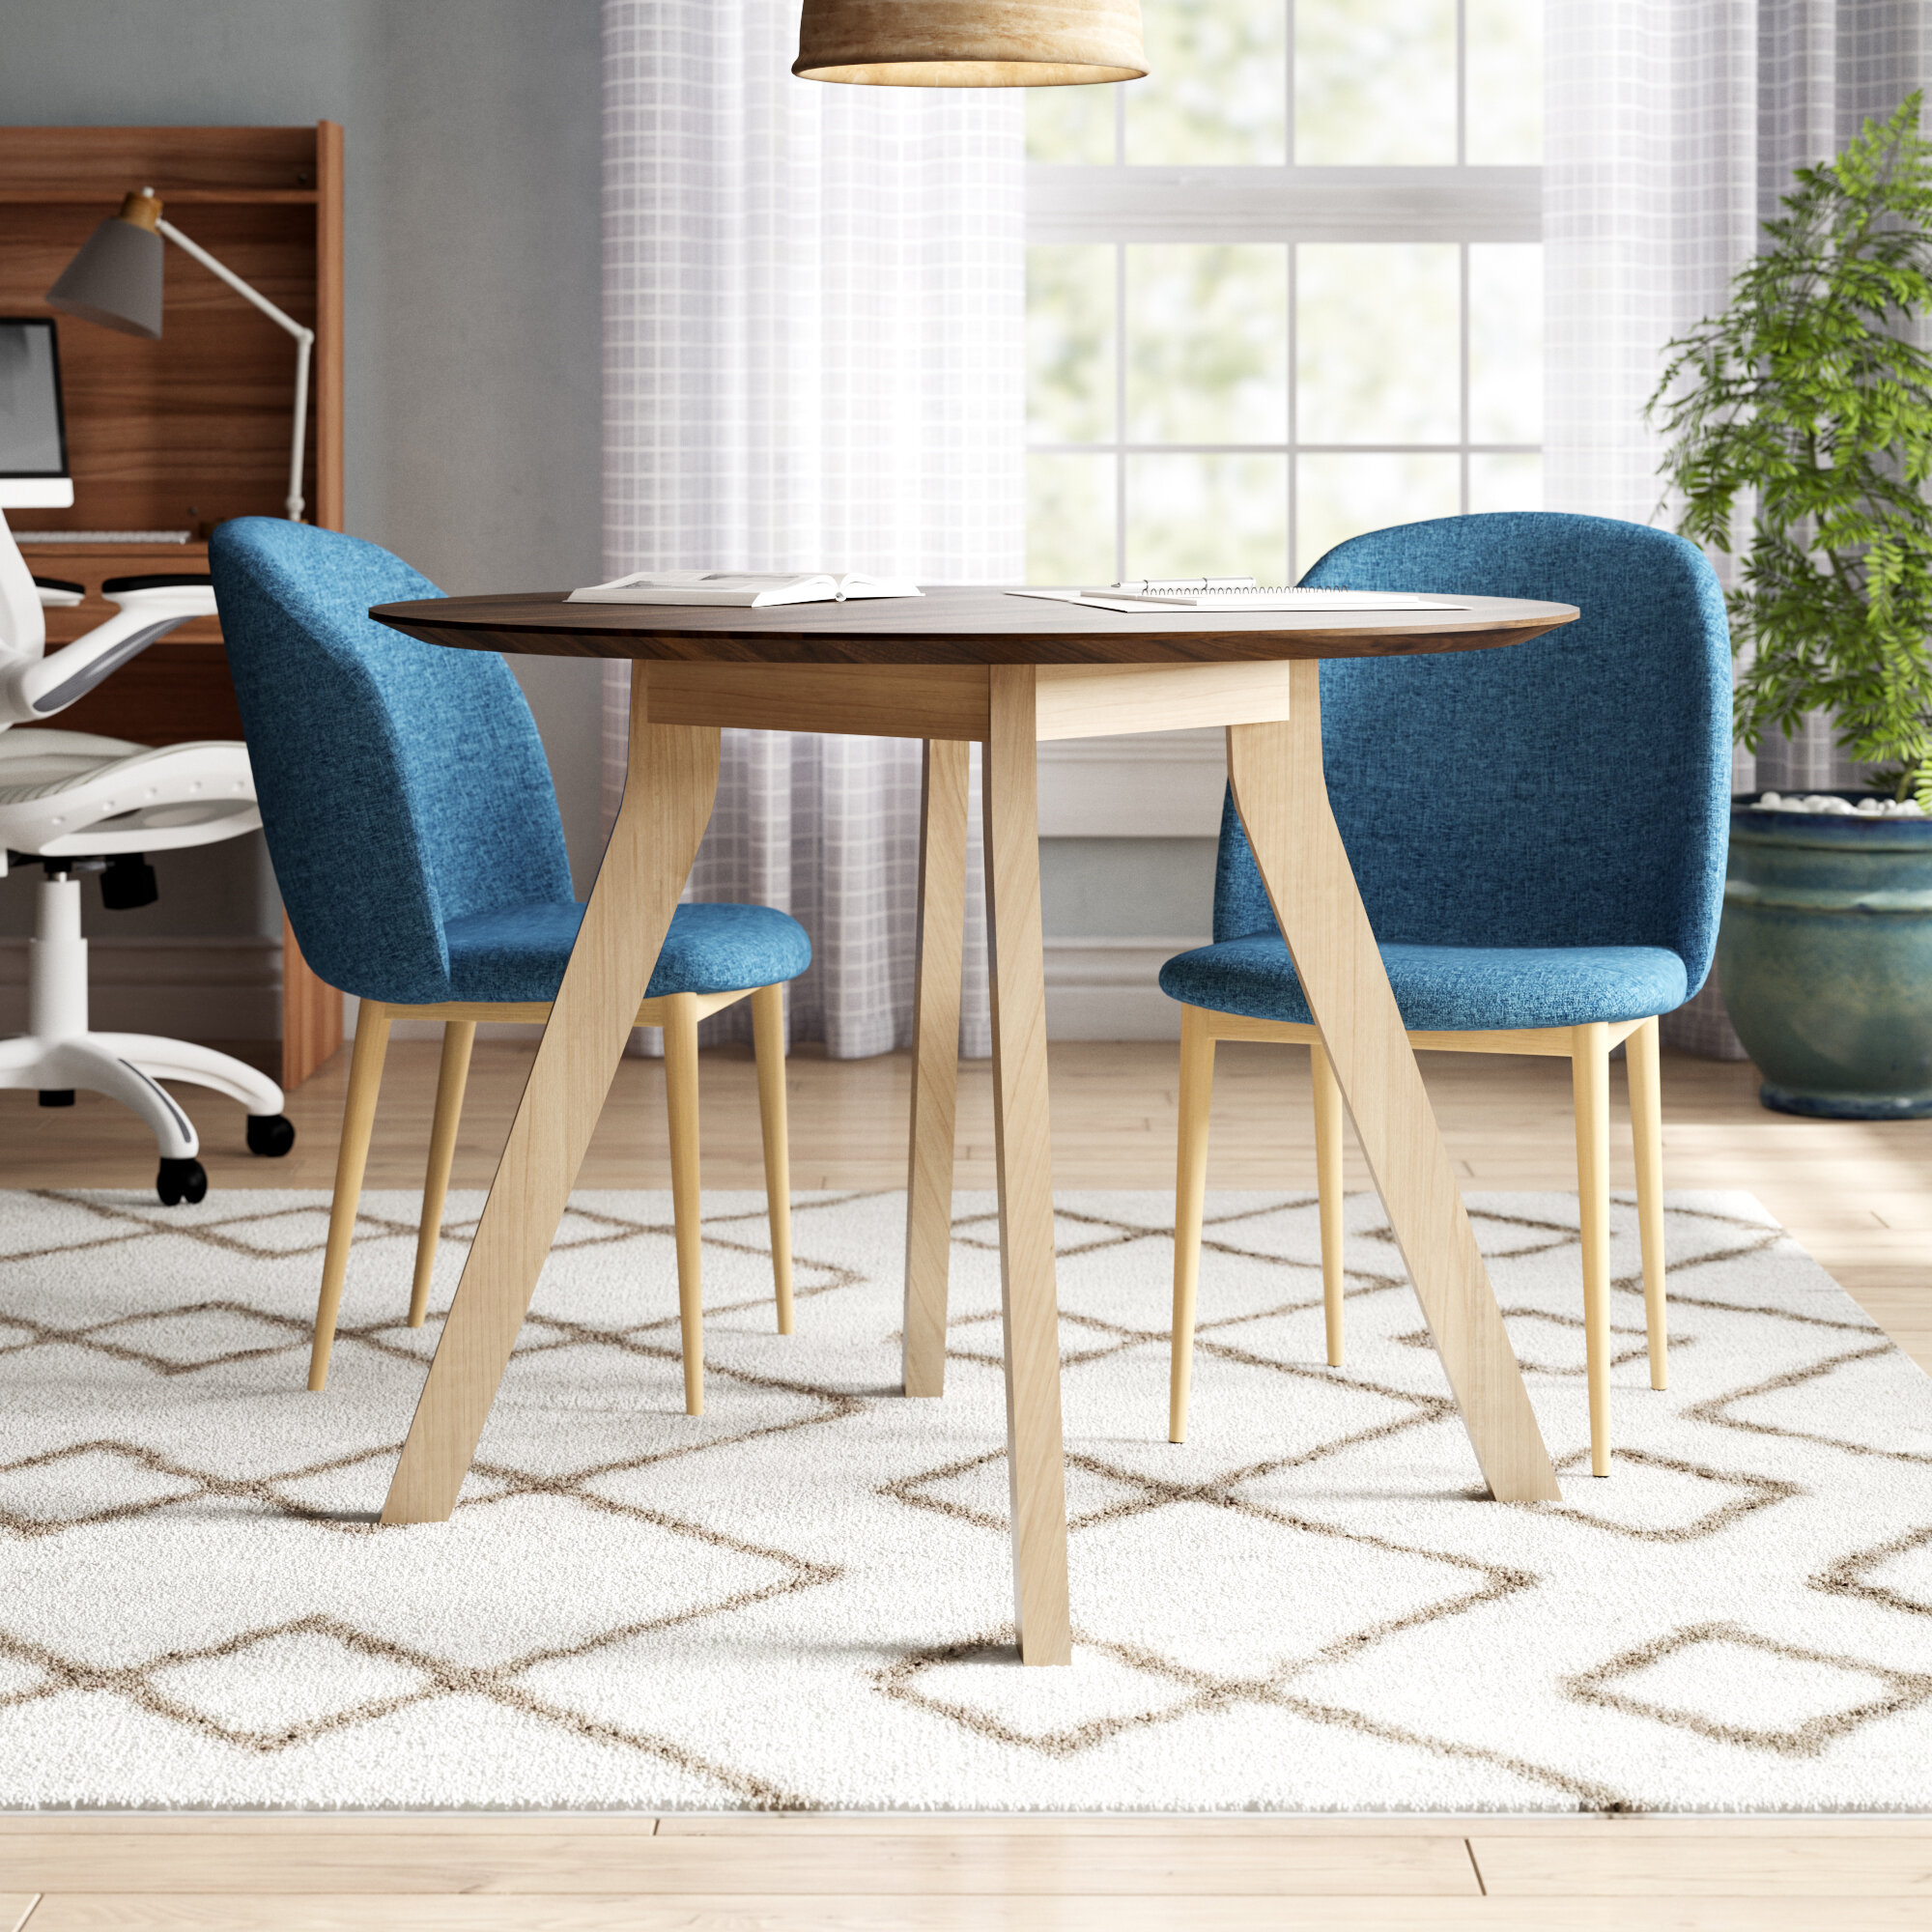 Super Small Round Conference Table Wayfair Download Free Architecture Designs Itiscsunscenecom